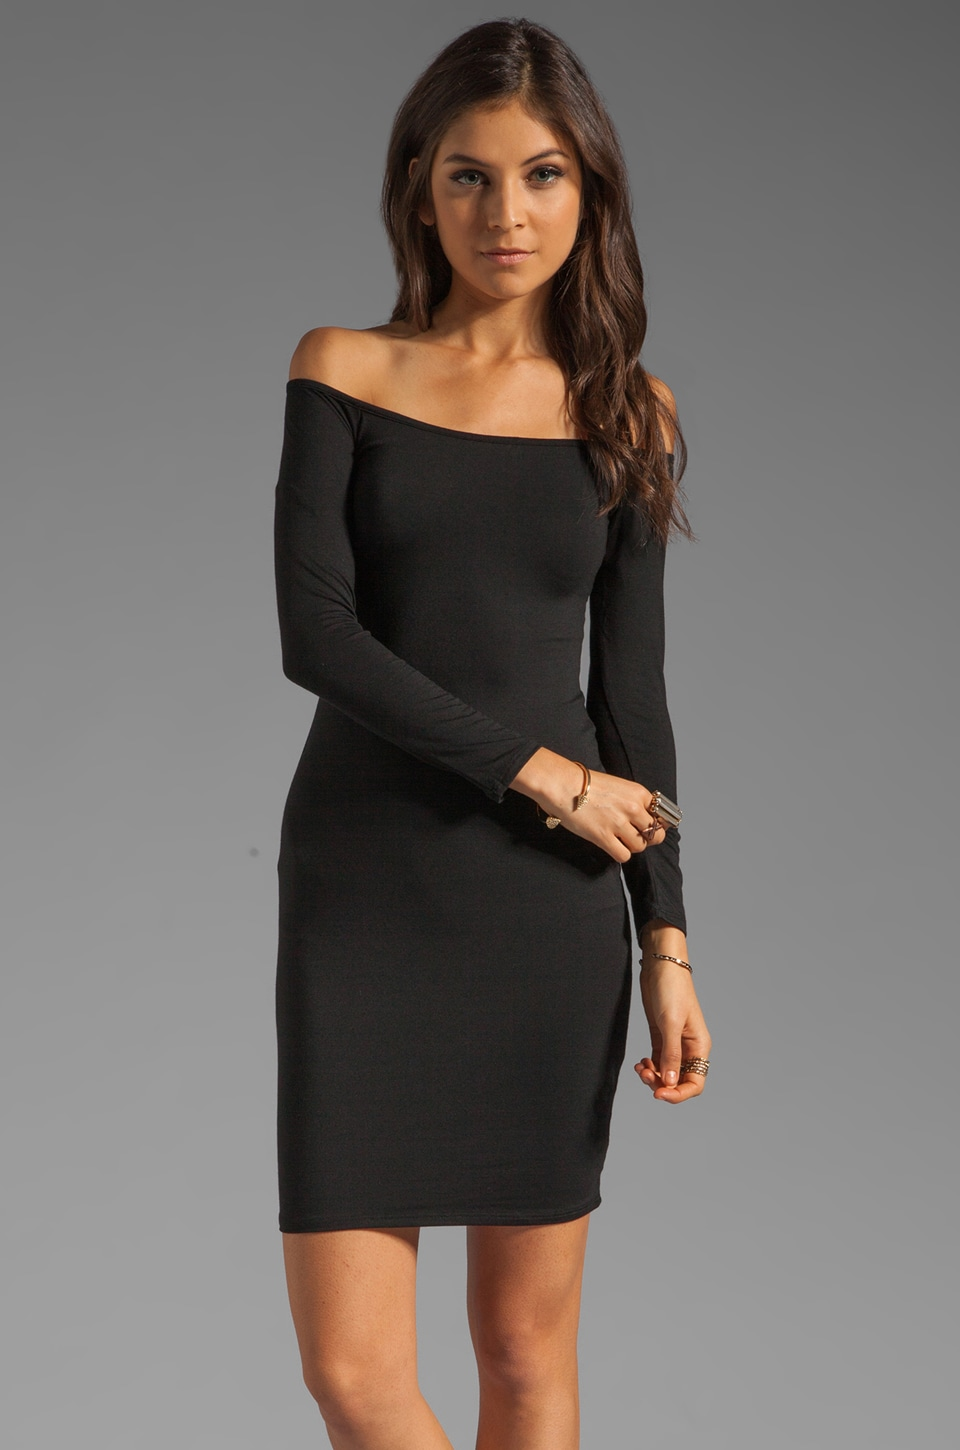 Rachel Pally Jagger Off the Shoulder Dress in Black